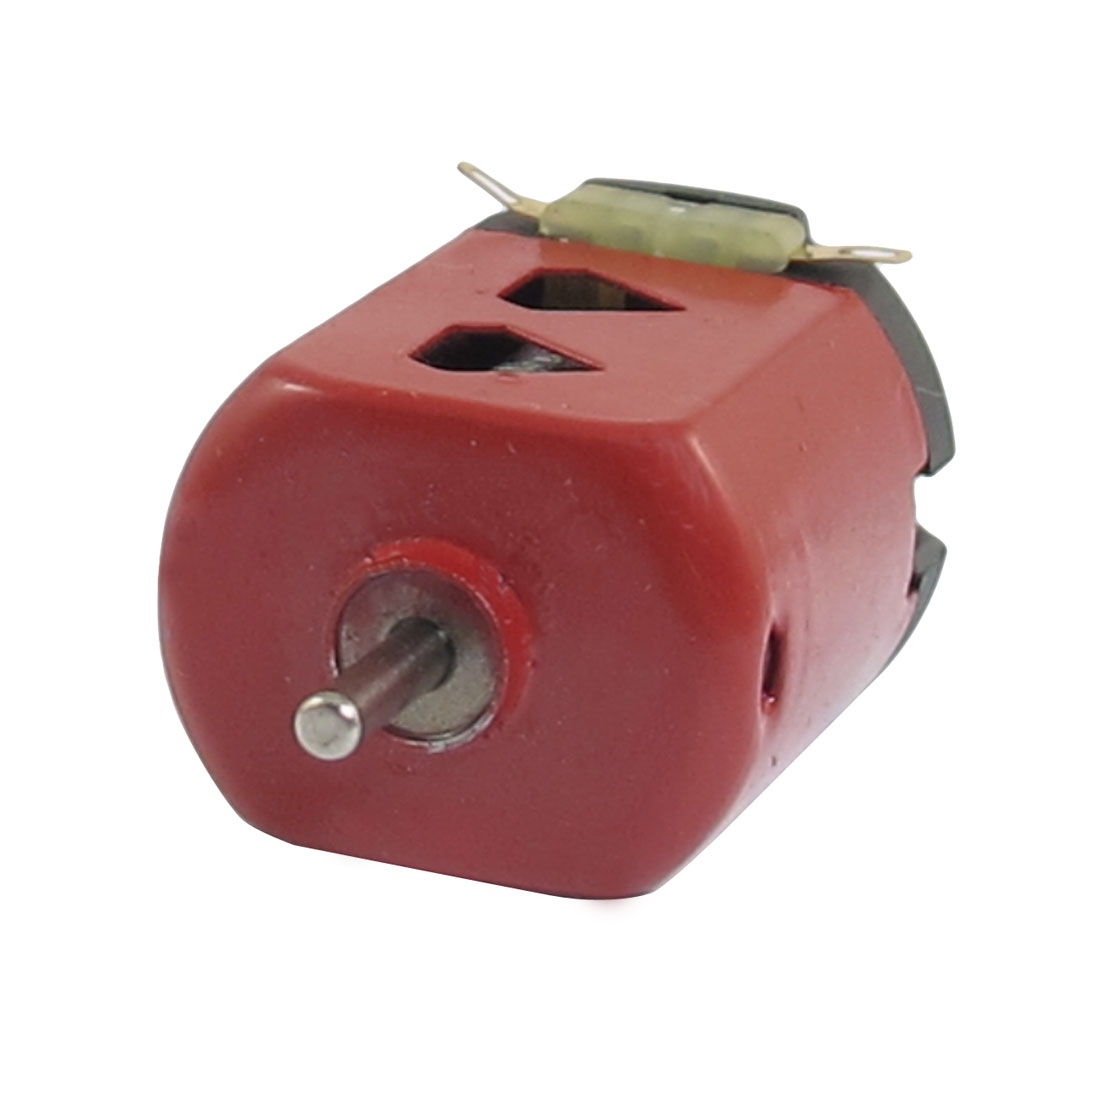 1.5V DC 9000RPM 400mA Red Black Flat Electric 130 Motor for Four-wheel Car